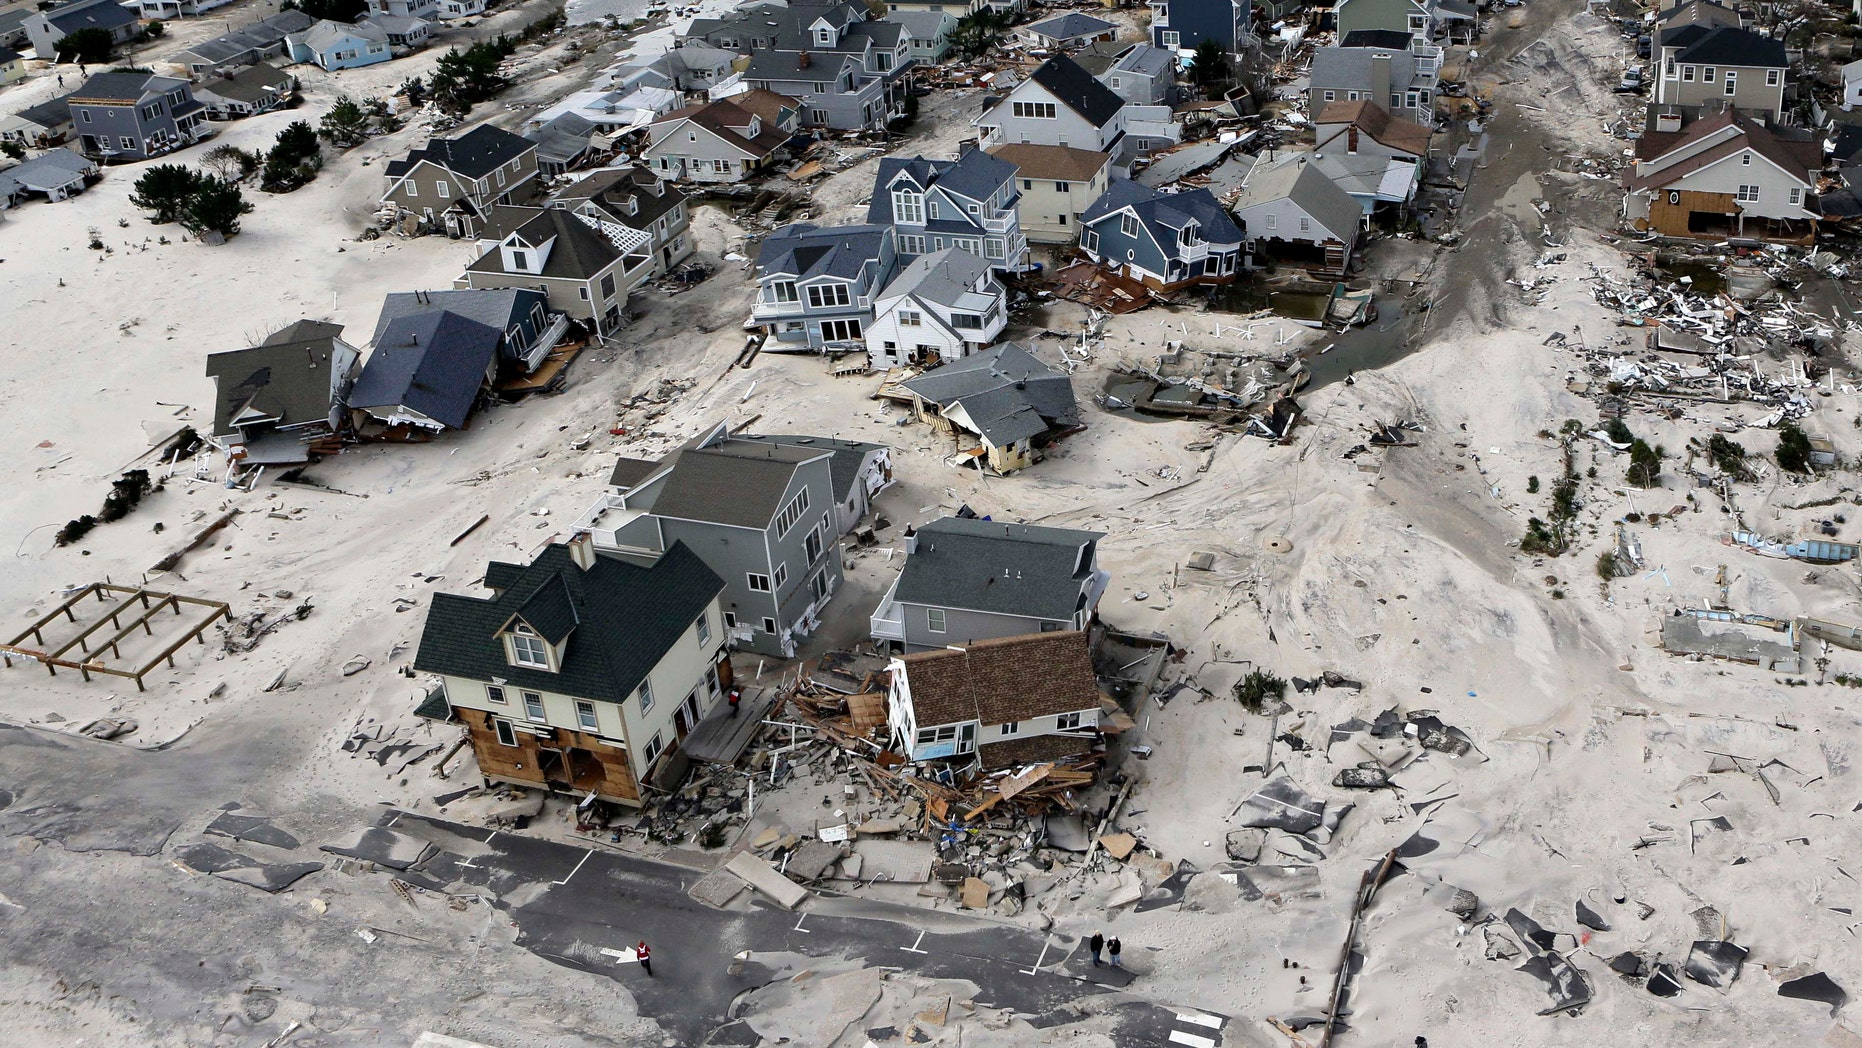 In this Oct. 31, 2012 file photo, a view from the air shows the destroyed homes left in the wake of Superstorm Sandy in Ortley Beach, N.J. (AP Photo/Mike Groll, File)